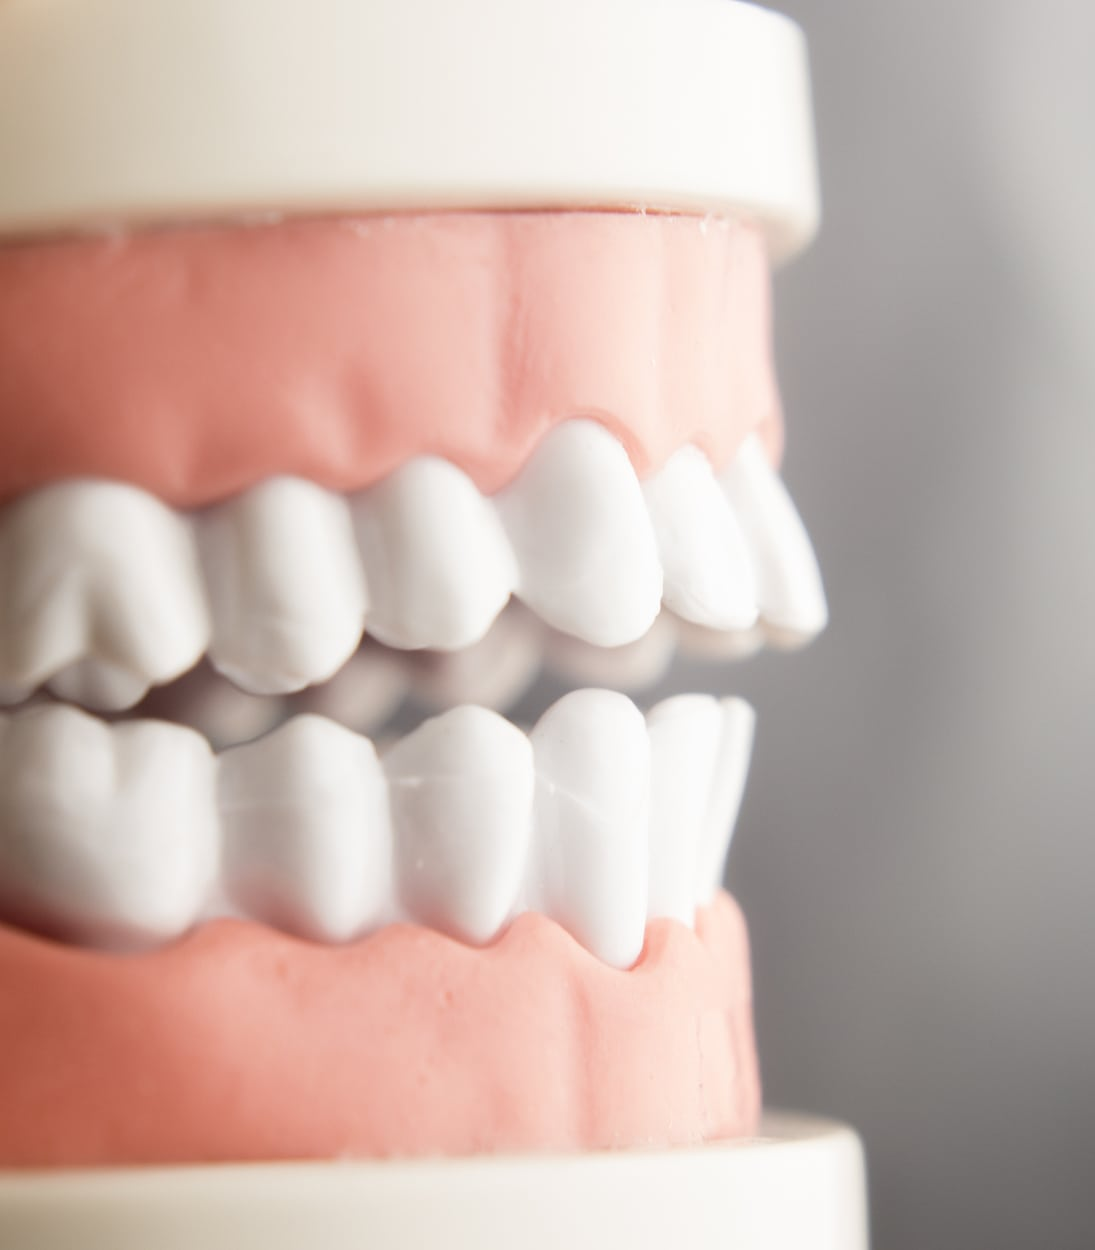 teeth and gums anatomical model showing scaling